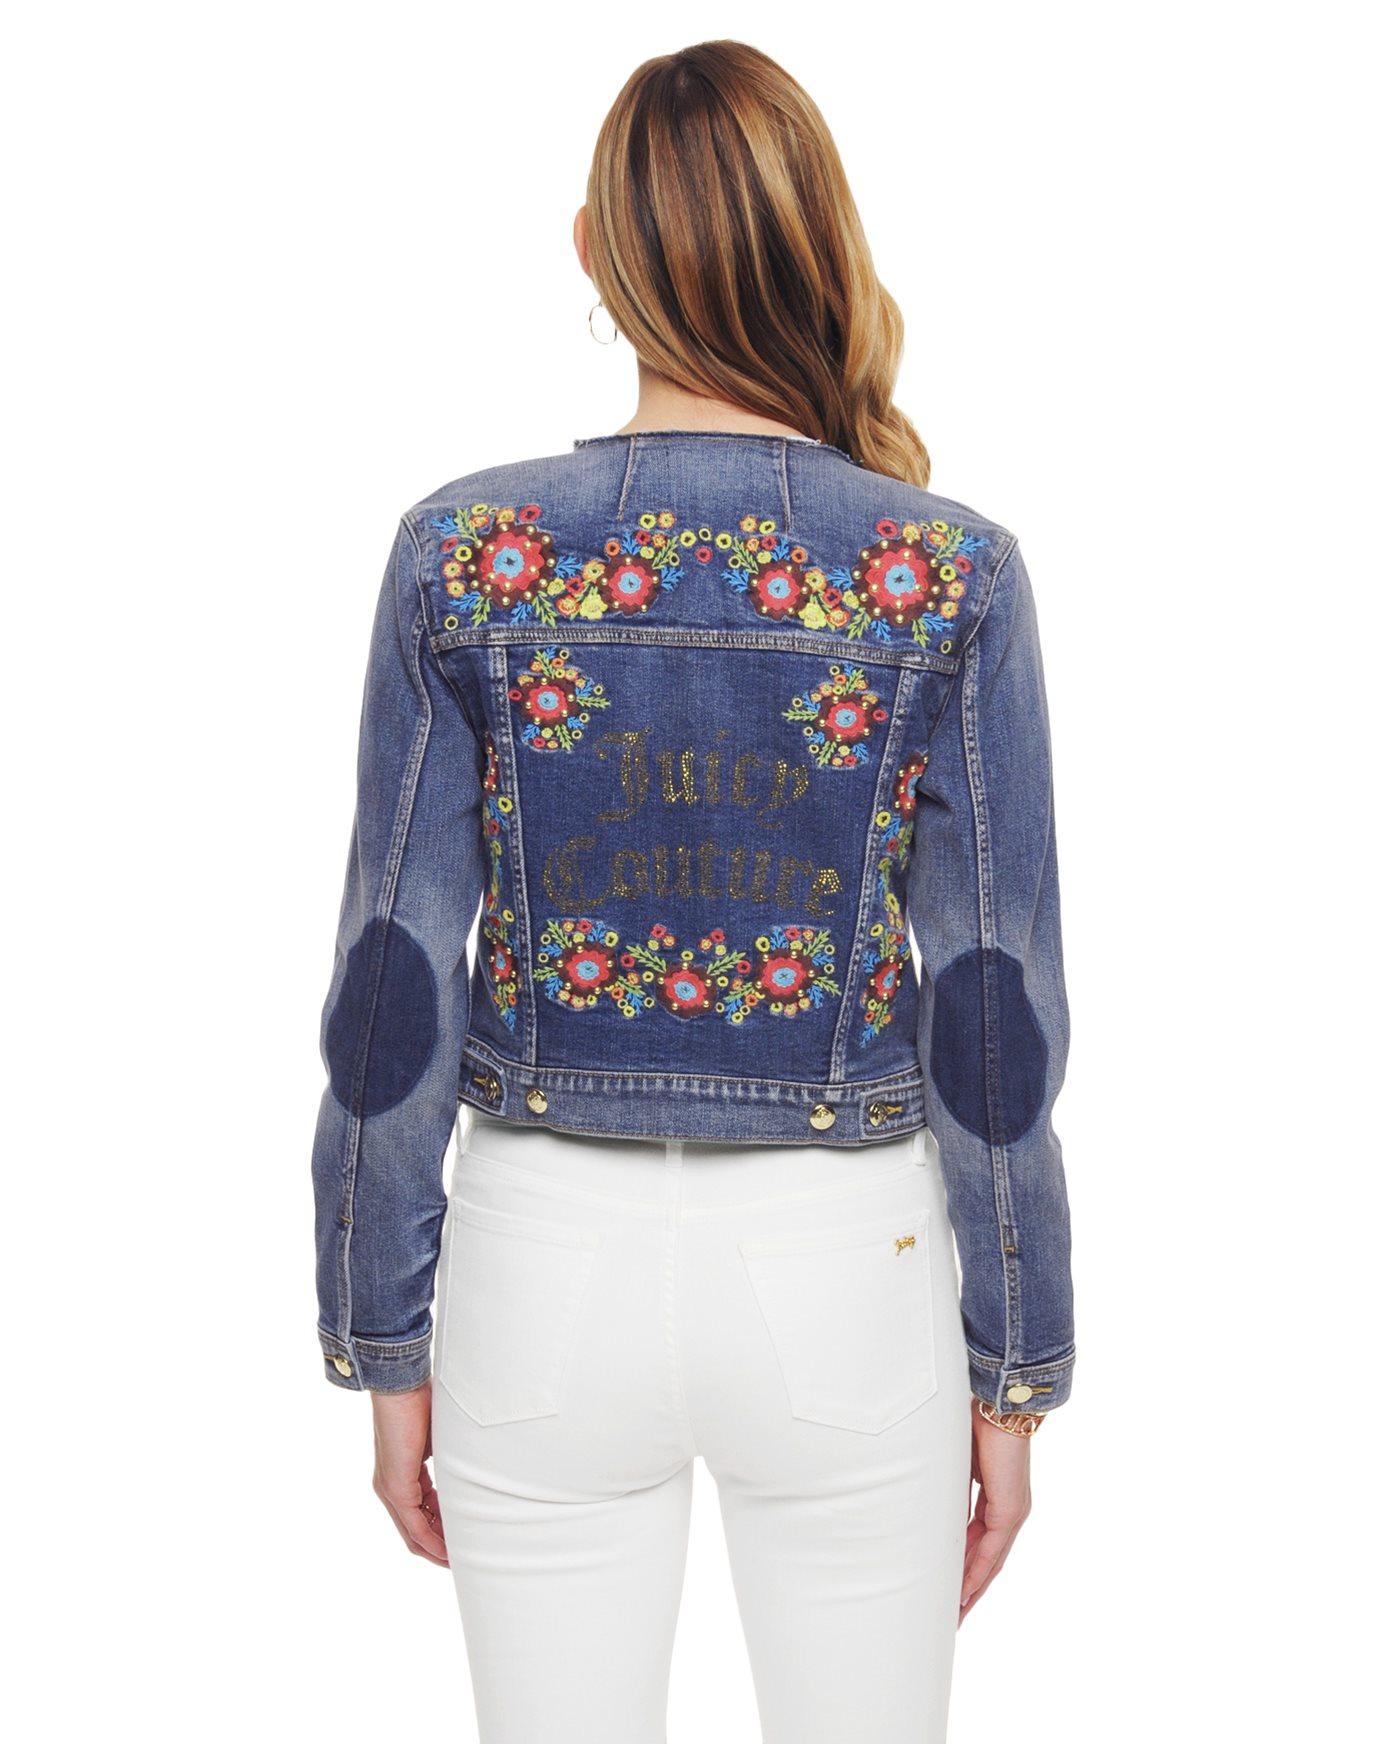 Juicy couture Floral Embroidered Denim Jacket in Blue | Lyst